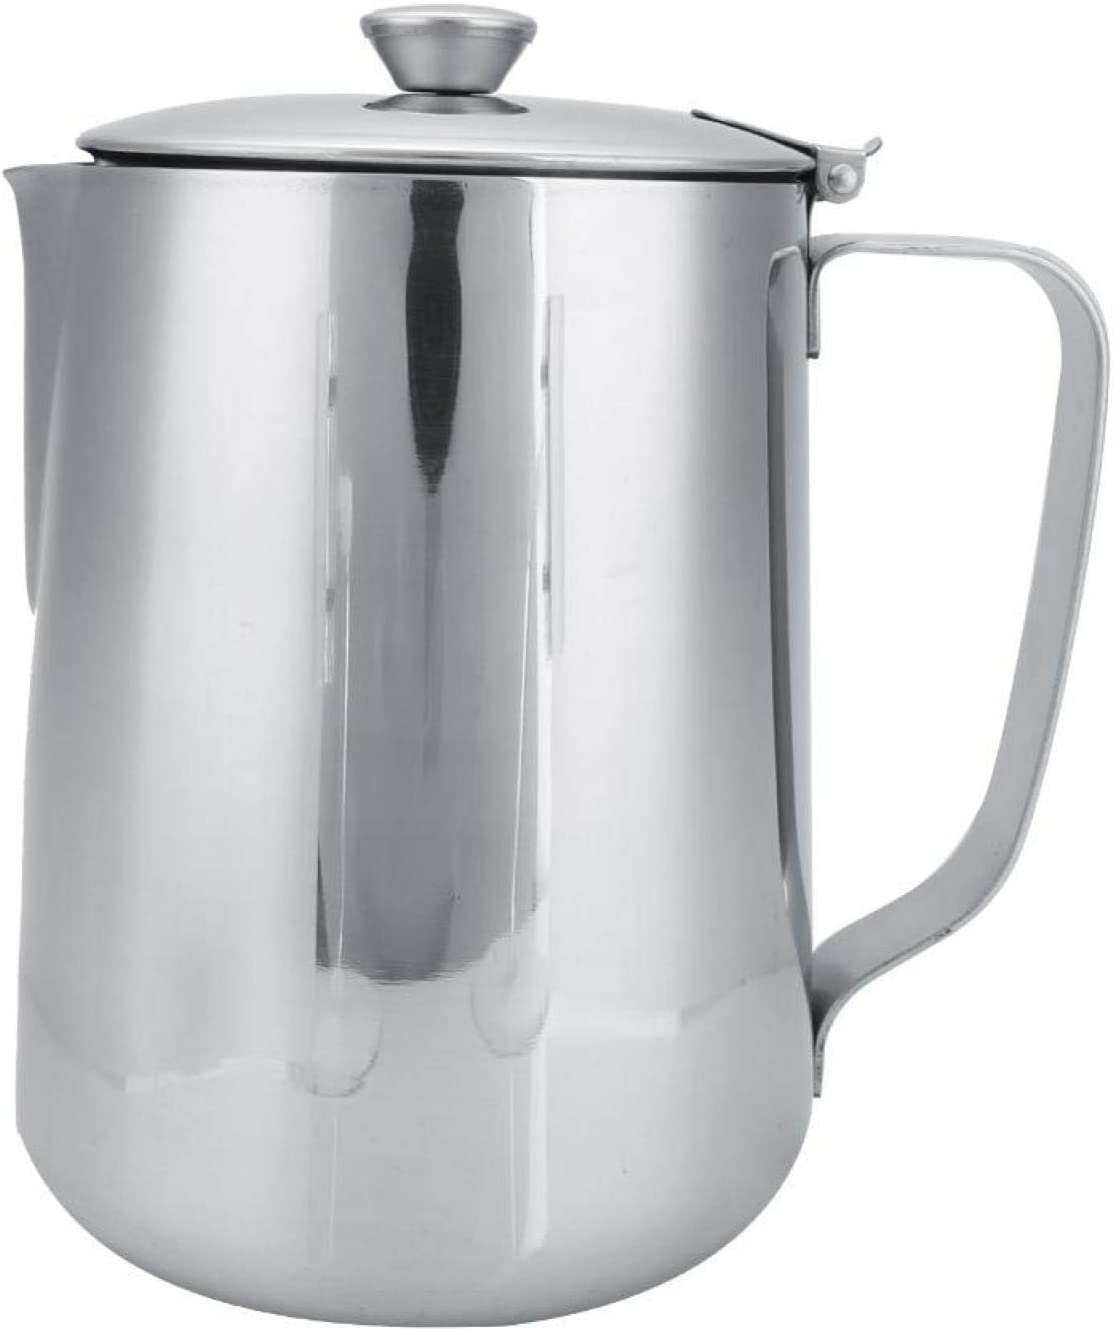 Stainless Steel Milk Frothing Pitcher Jug,Coffee Cup Mug with Li